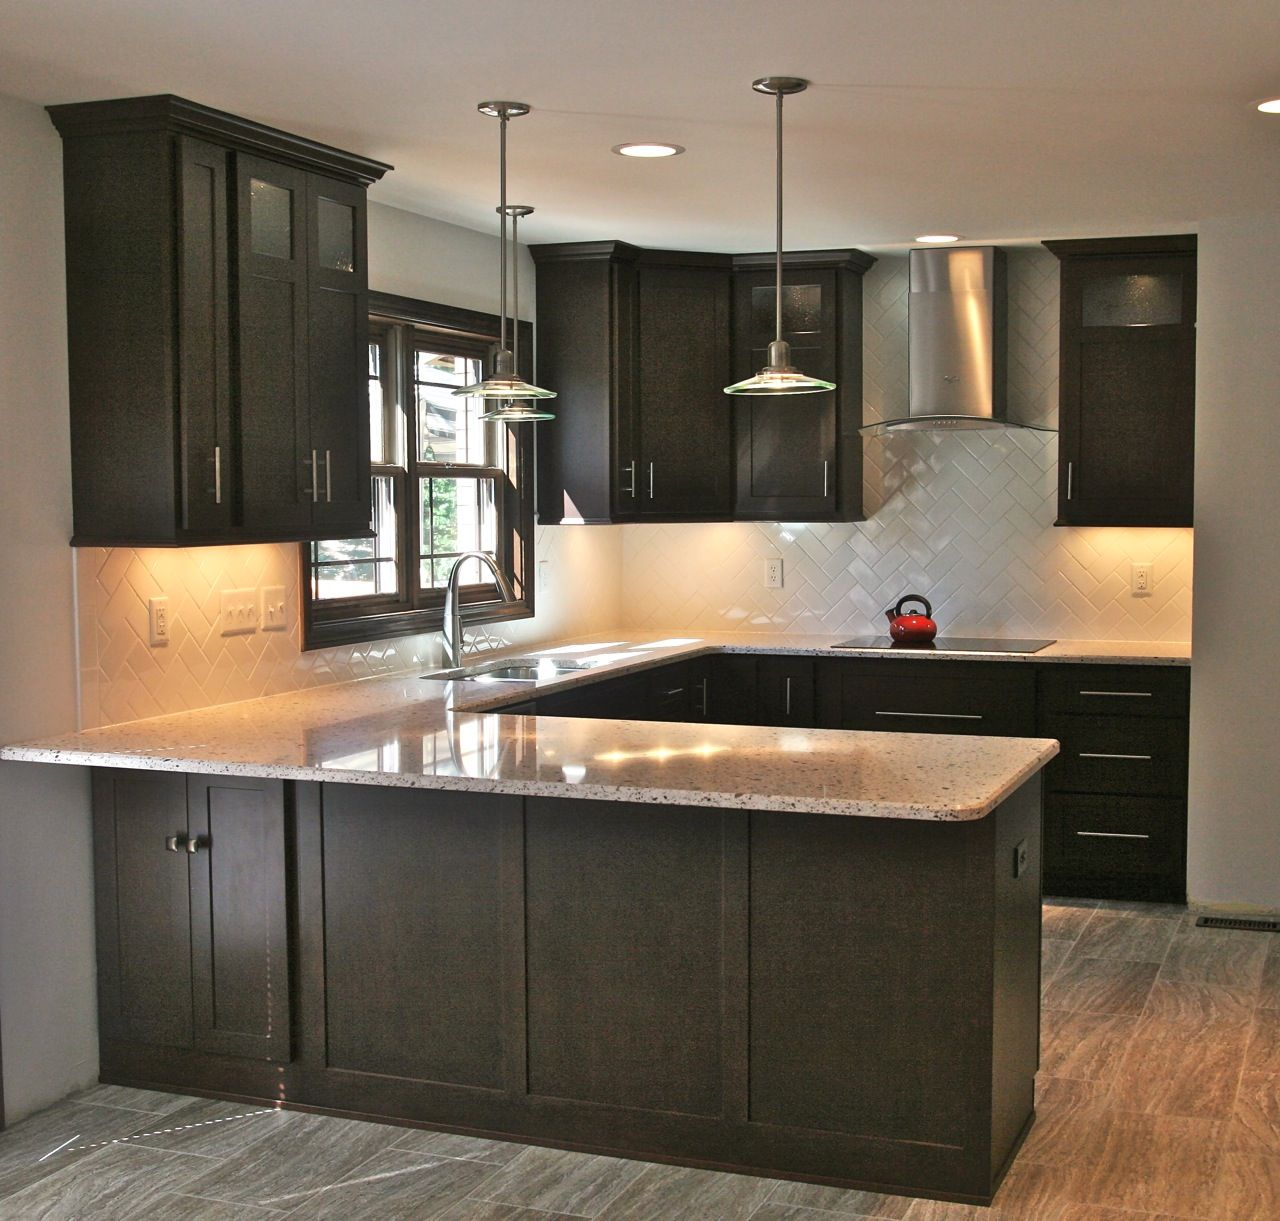 Kitchen Renovations Dark Cabinets: Dark Kitchen Cabinets, Backsplash With Dark